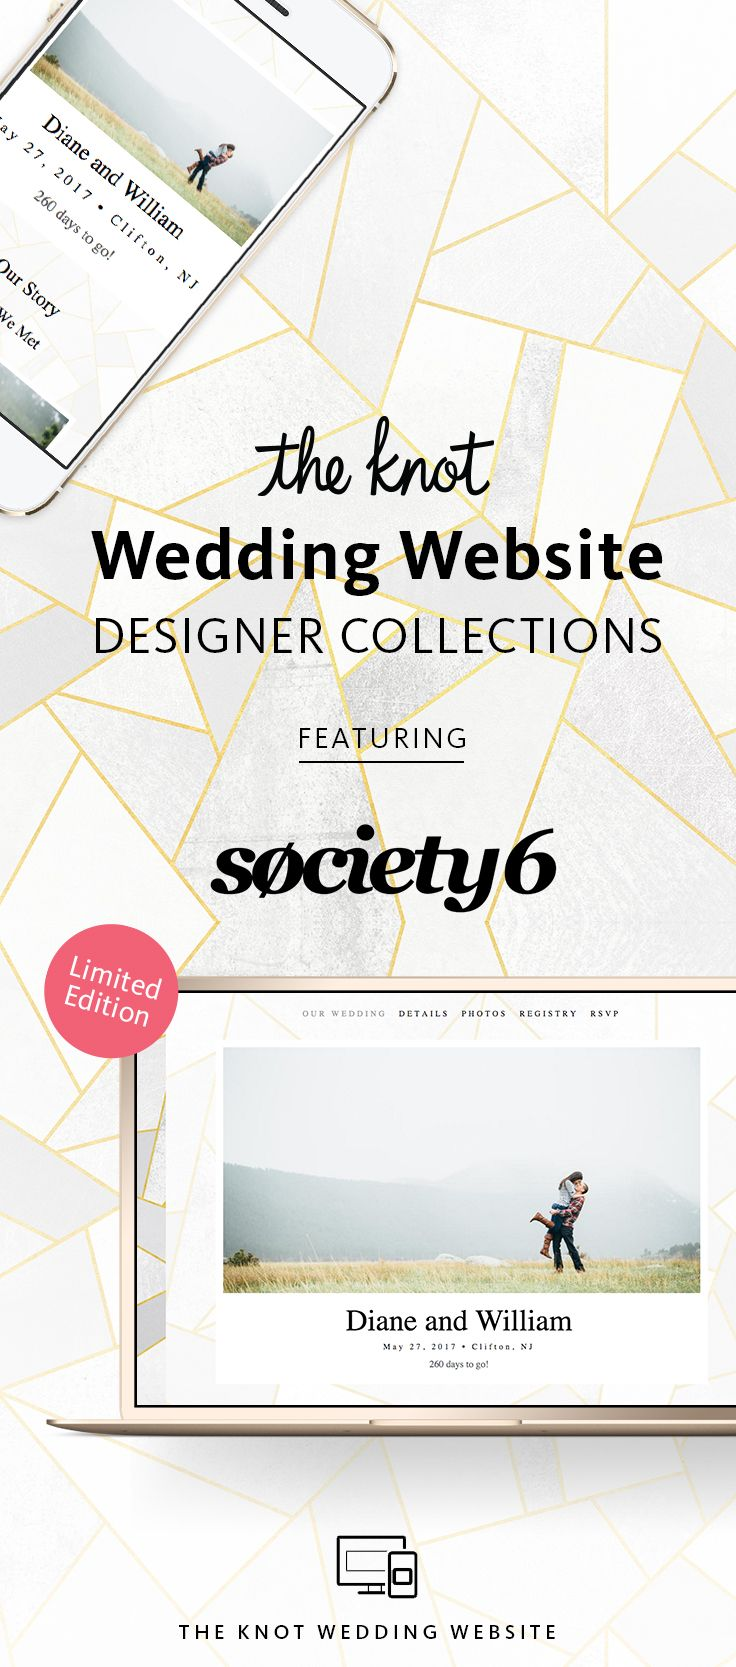 Build your own free wedding website with a customized look